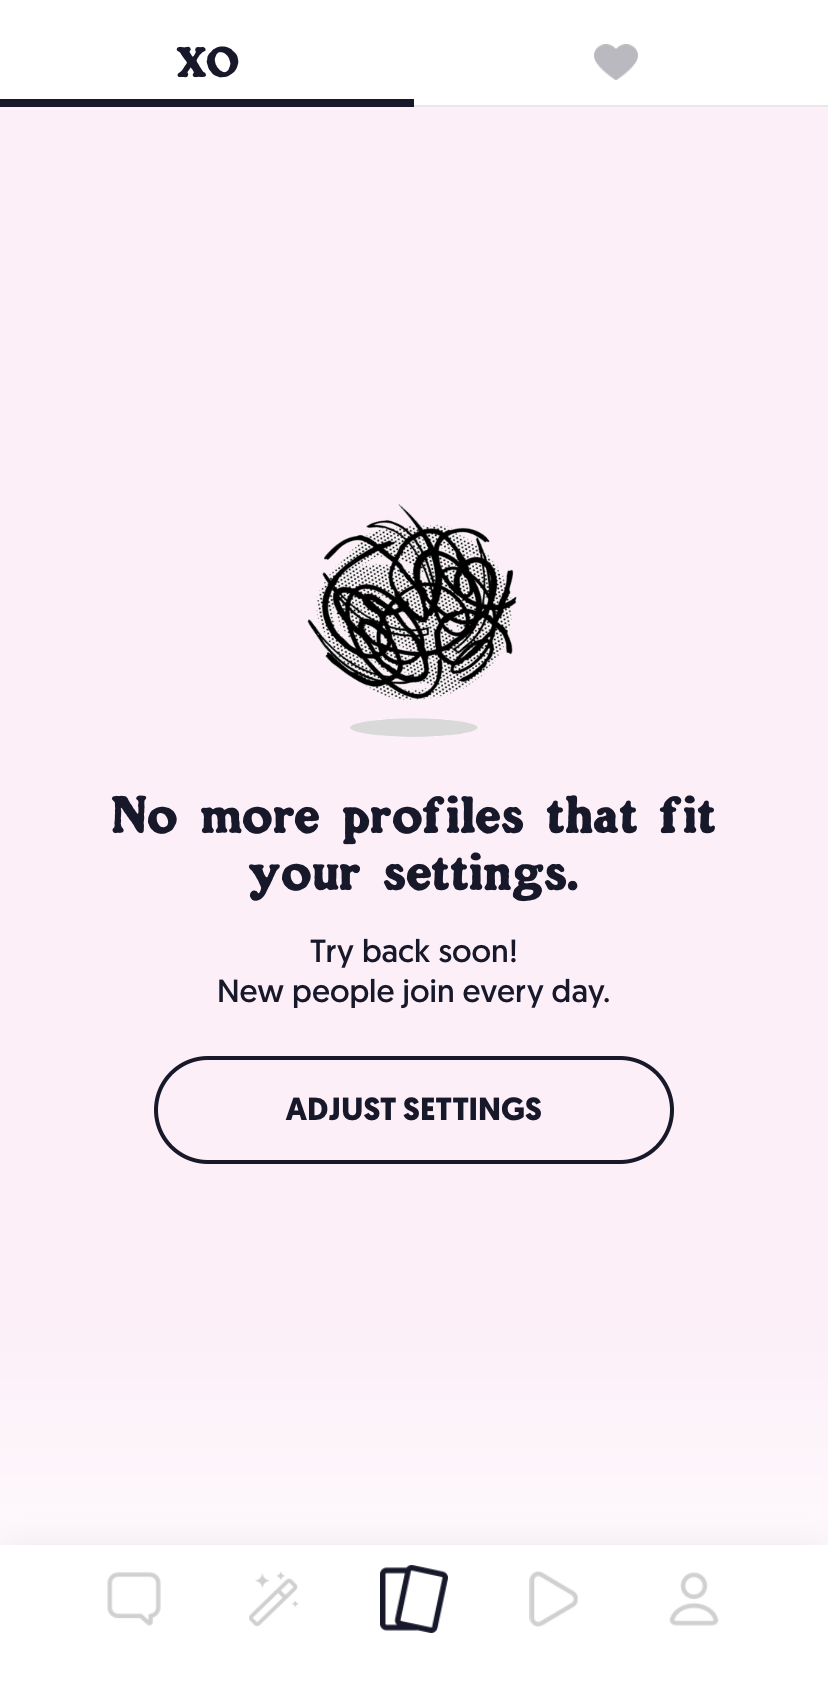 """A screenshot of a pink background and an illustration of a tumbleweed; below it, text reads """"No more profiles that fit in your settings. Try back soon! New people join every day."""""""